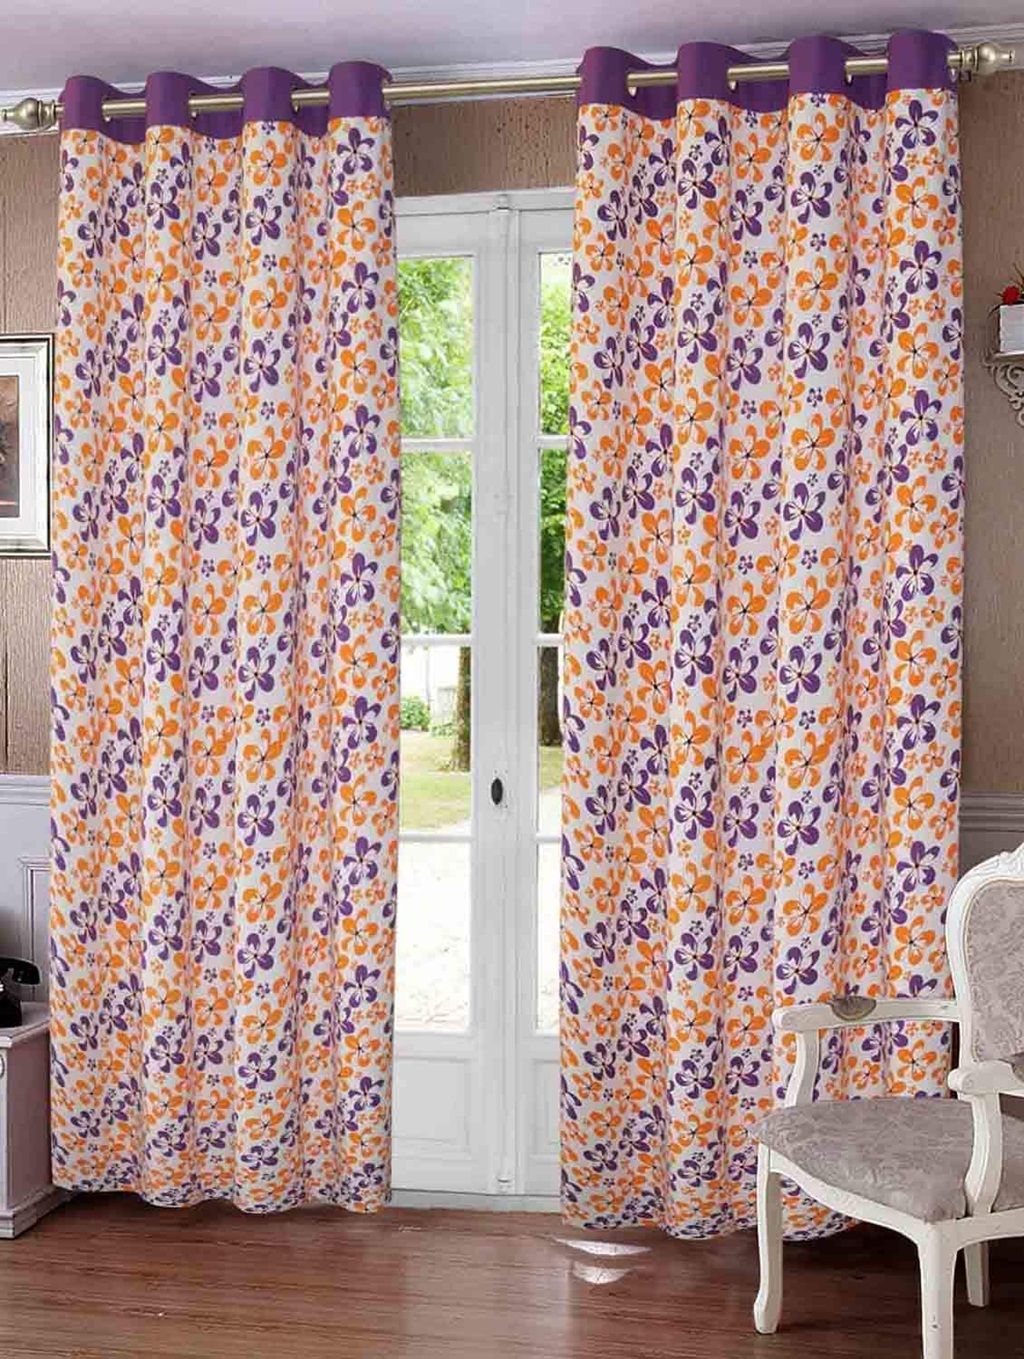 Magical Decorative Cotton Curtains